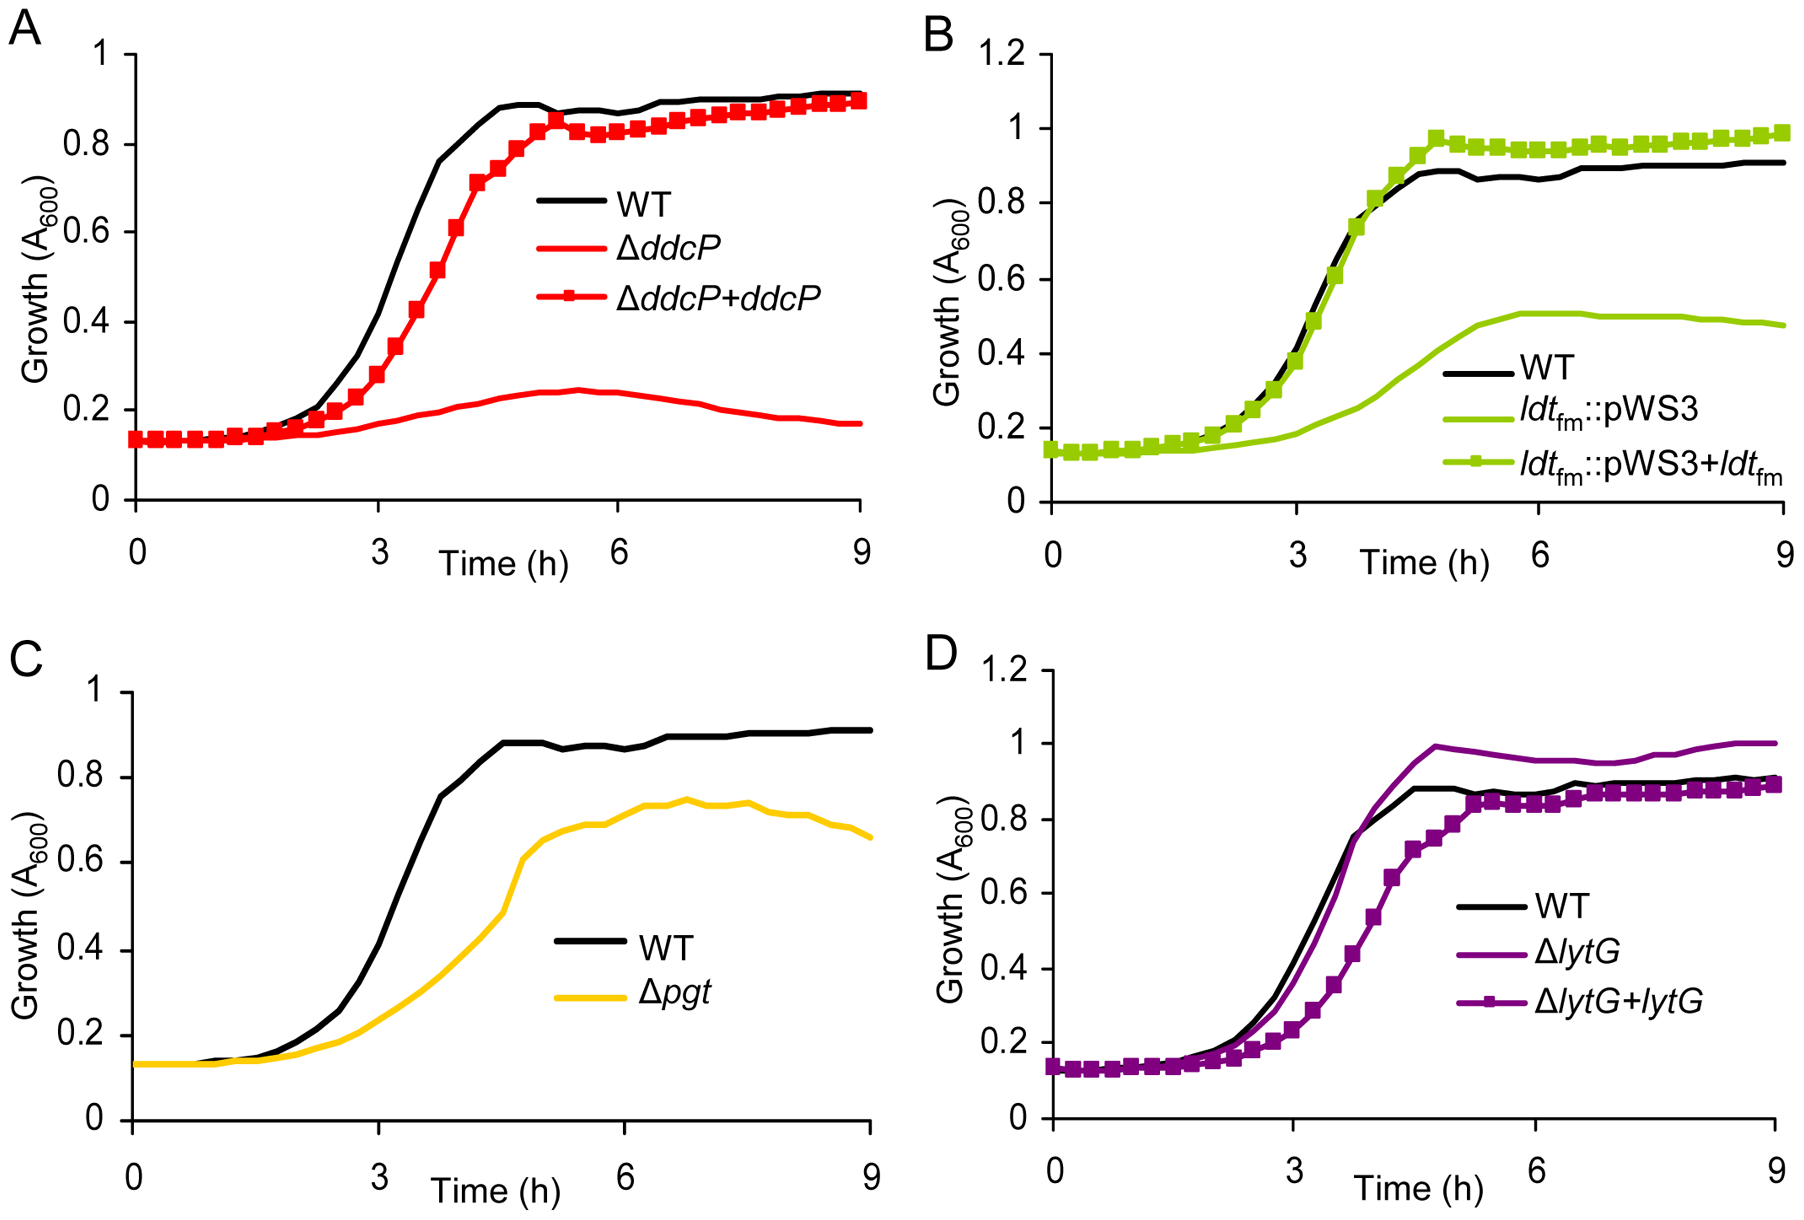 The effect of targeted mutations of <i>ddcP</i>, <i>ldt</i><sub>fm</sub>, <i>pgt</i>, and <i>lytG</i> on growth of <i>E. faecium</i> in the presence of ampicillin.